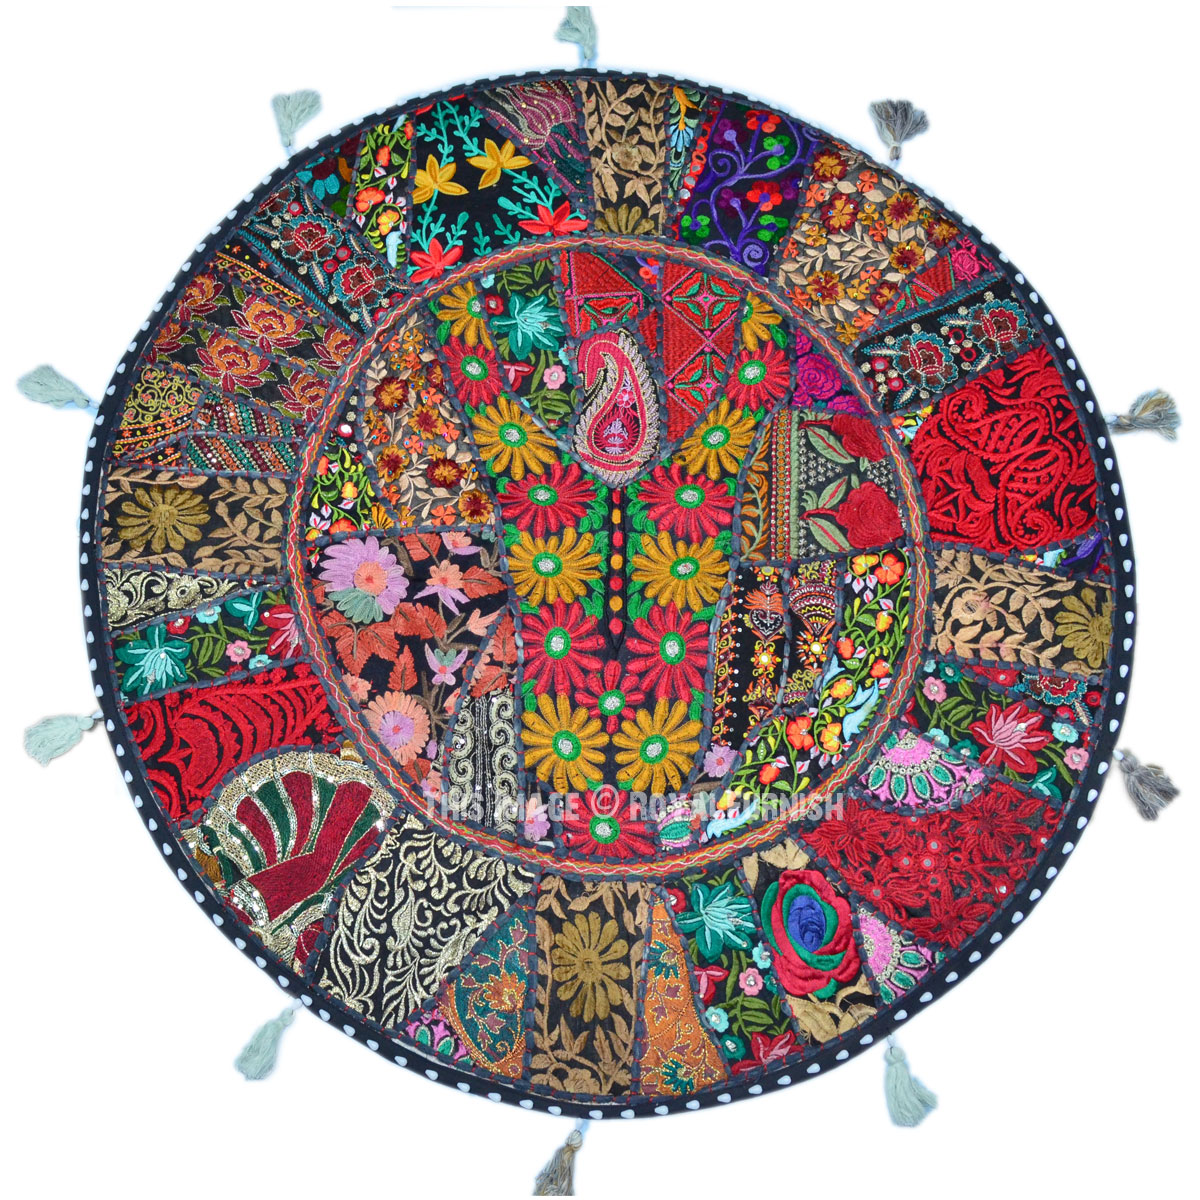 Extra Large Round Floor Pillows : Black Multi Recycled Sari Patchwork Round Floor Pillow Cover - RoyalFurnish.com